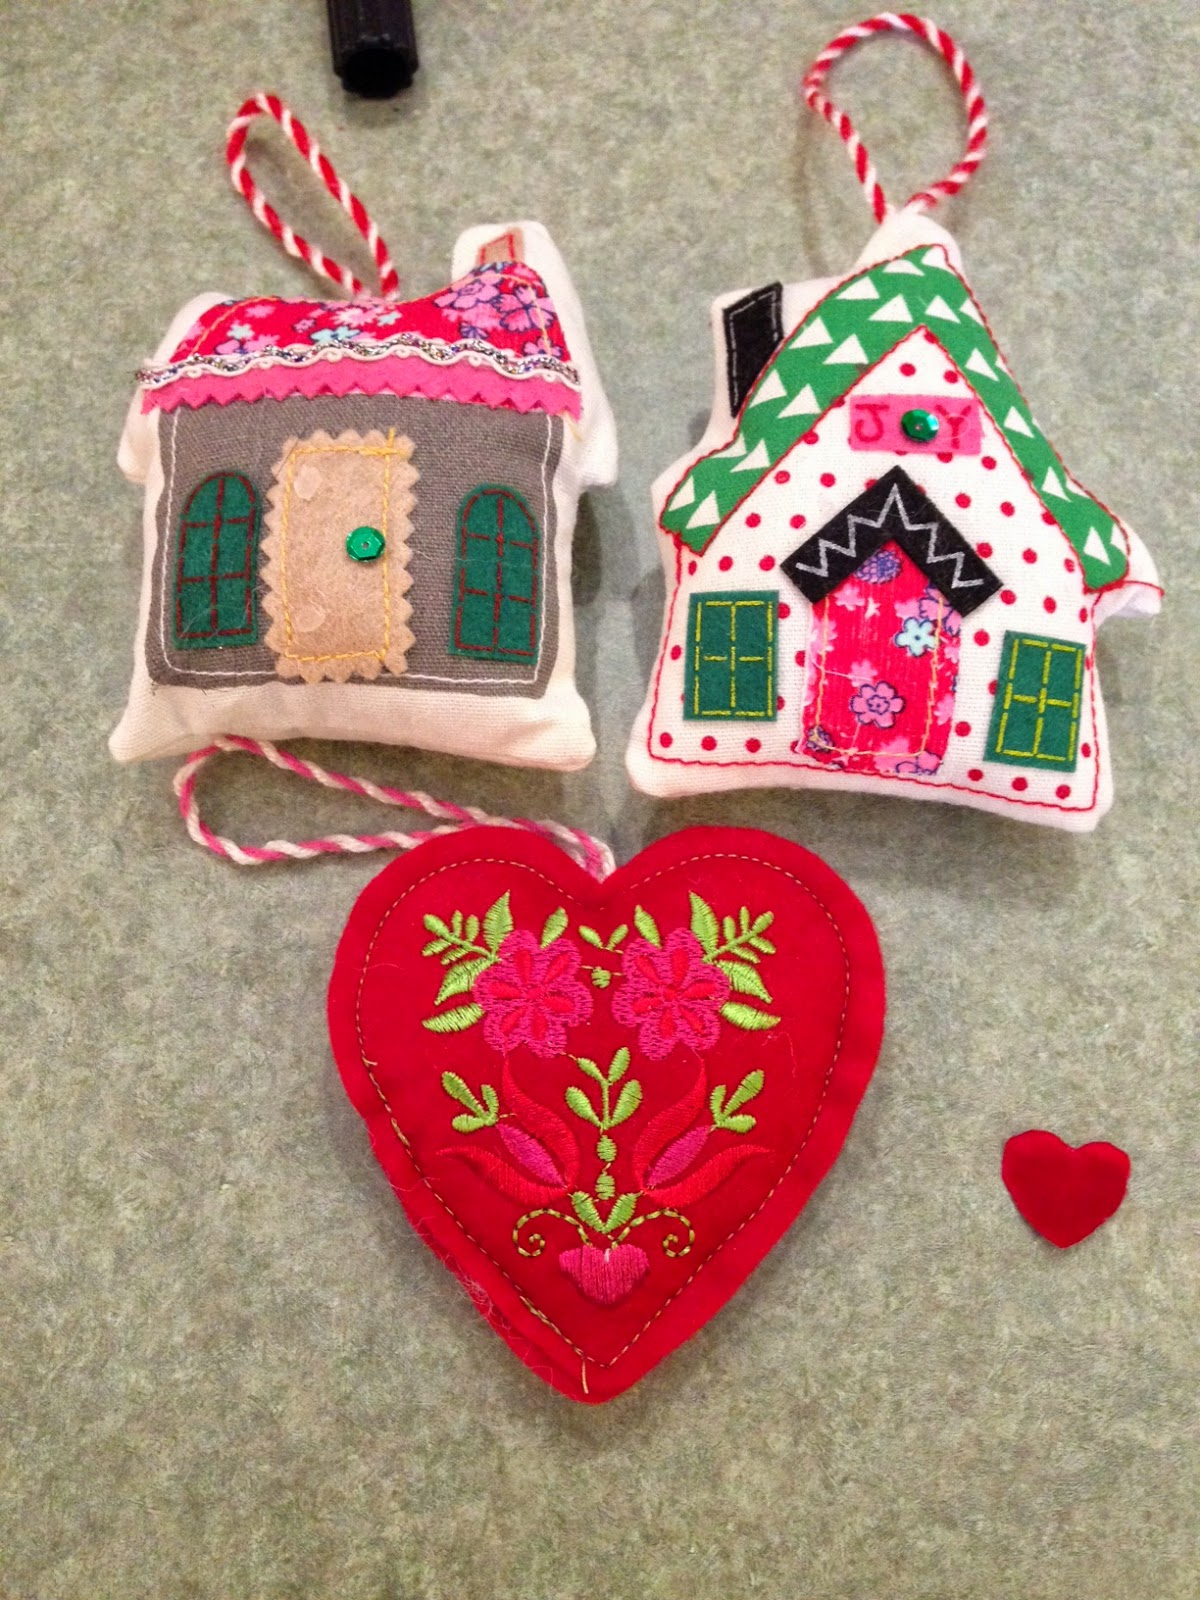 Valentine tree ornaments - Are You Working On Any Special Valentine Projects